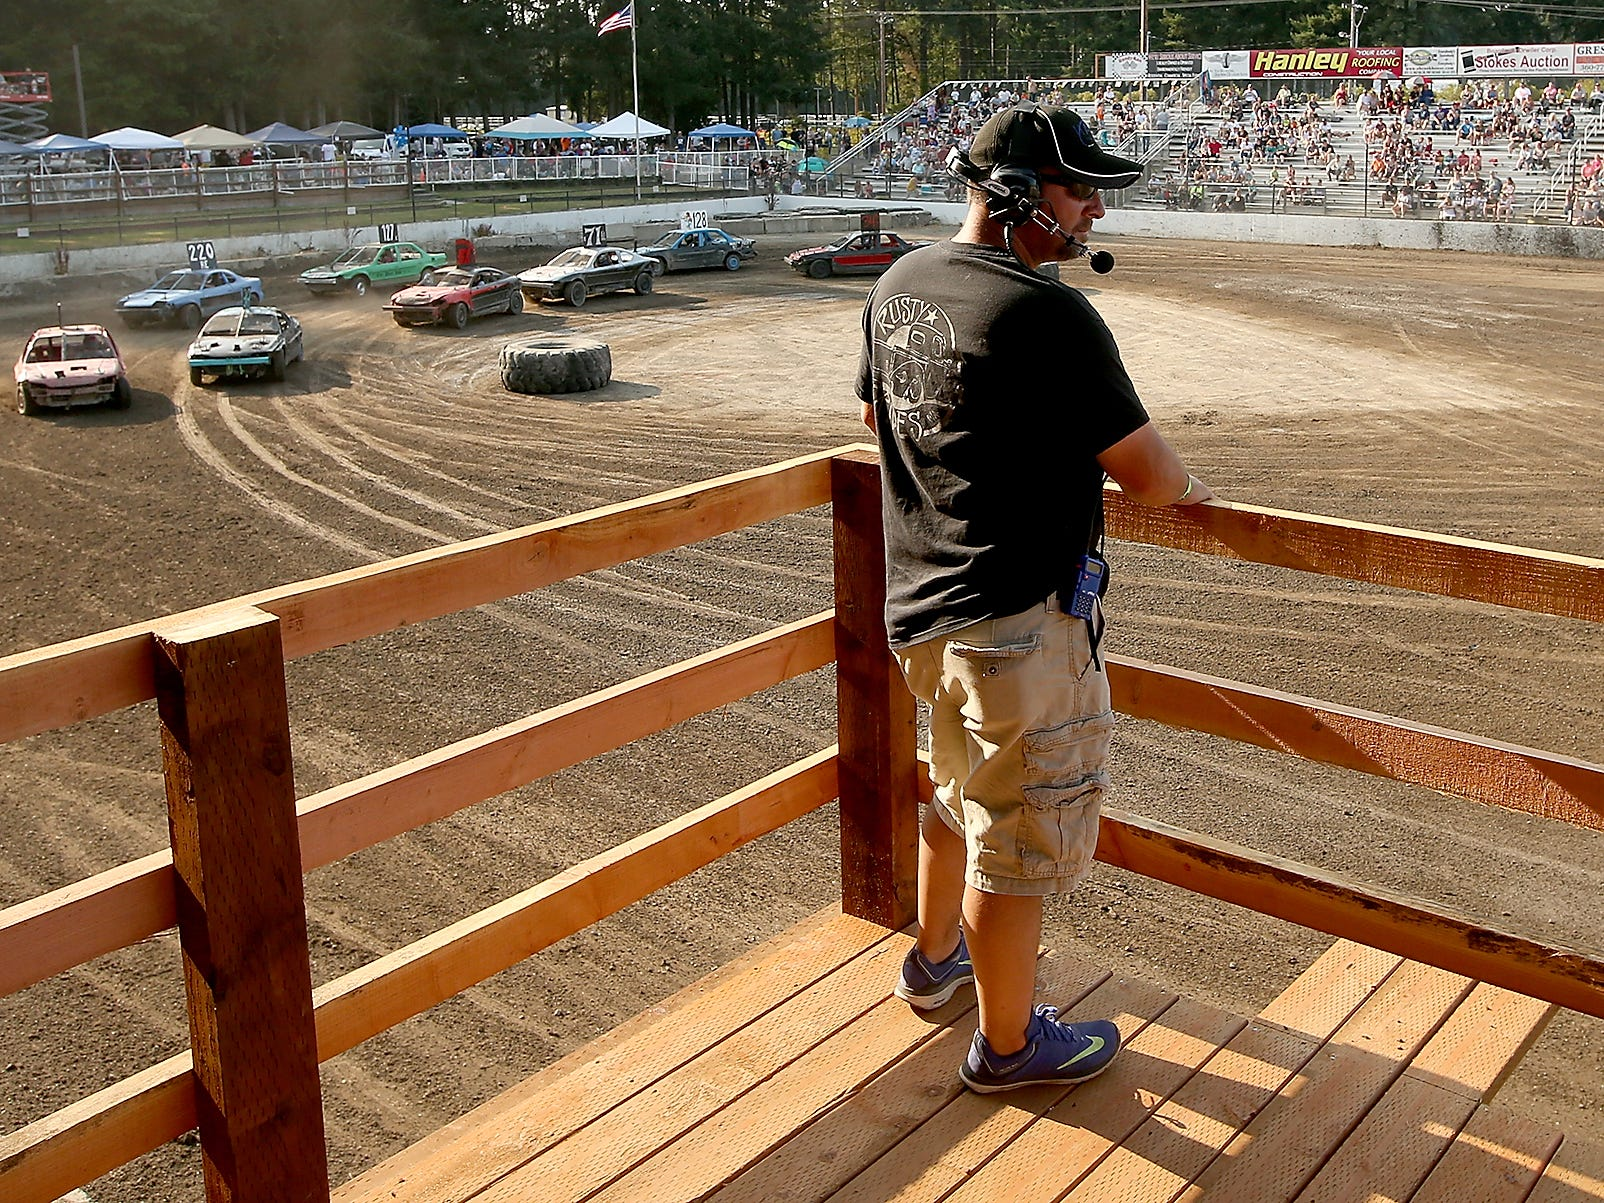 Head Judge Todd Williams keeps his eye on flagger Mike Stevenson as the cars ready for the start below during the Kitsap Destruction Derby on Saturday, July 28, 2018.